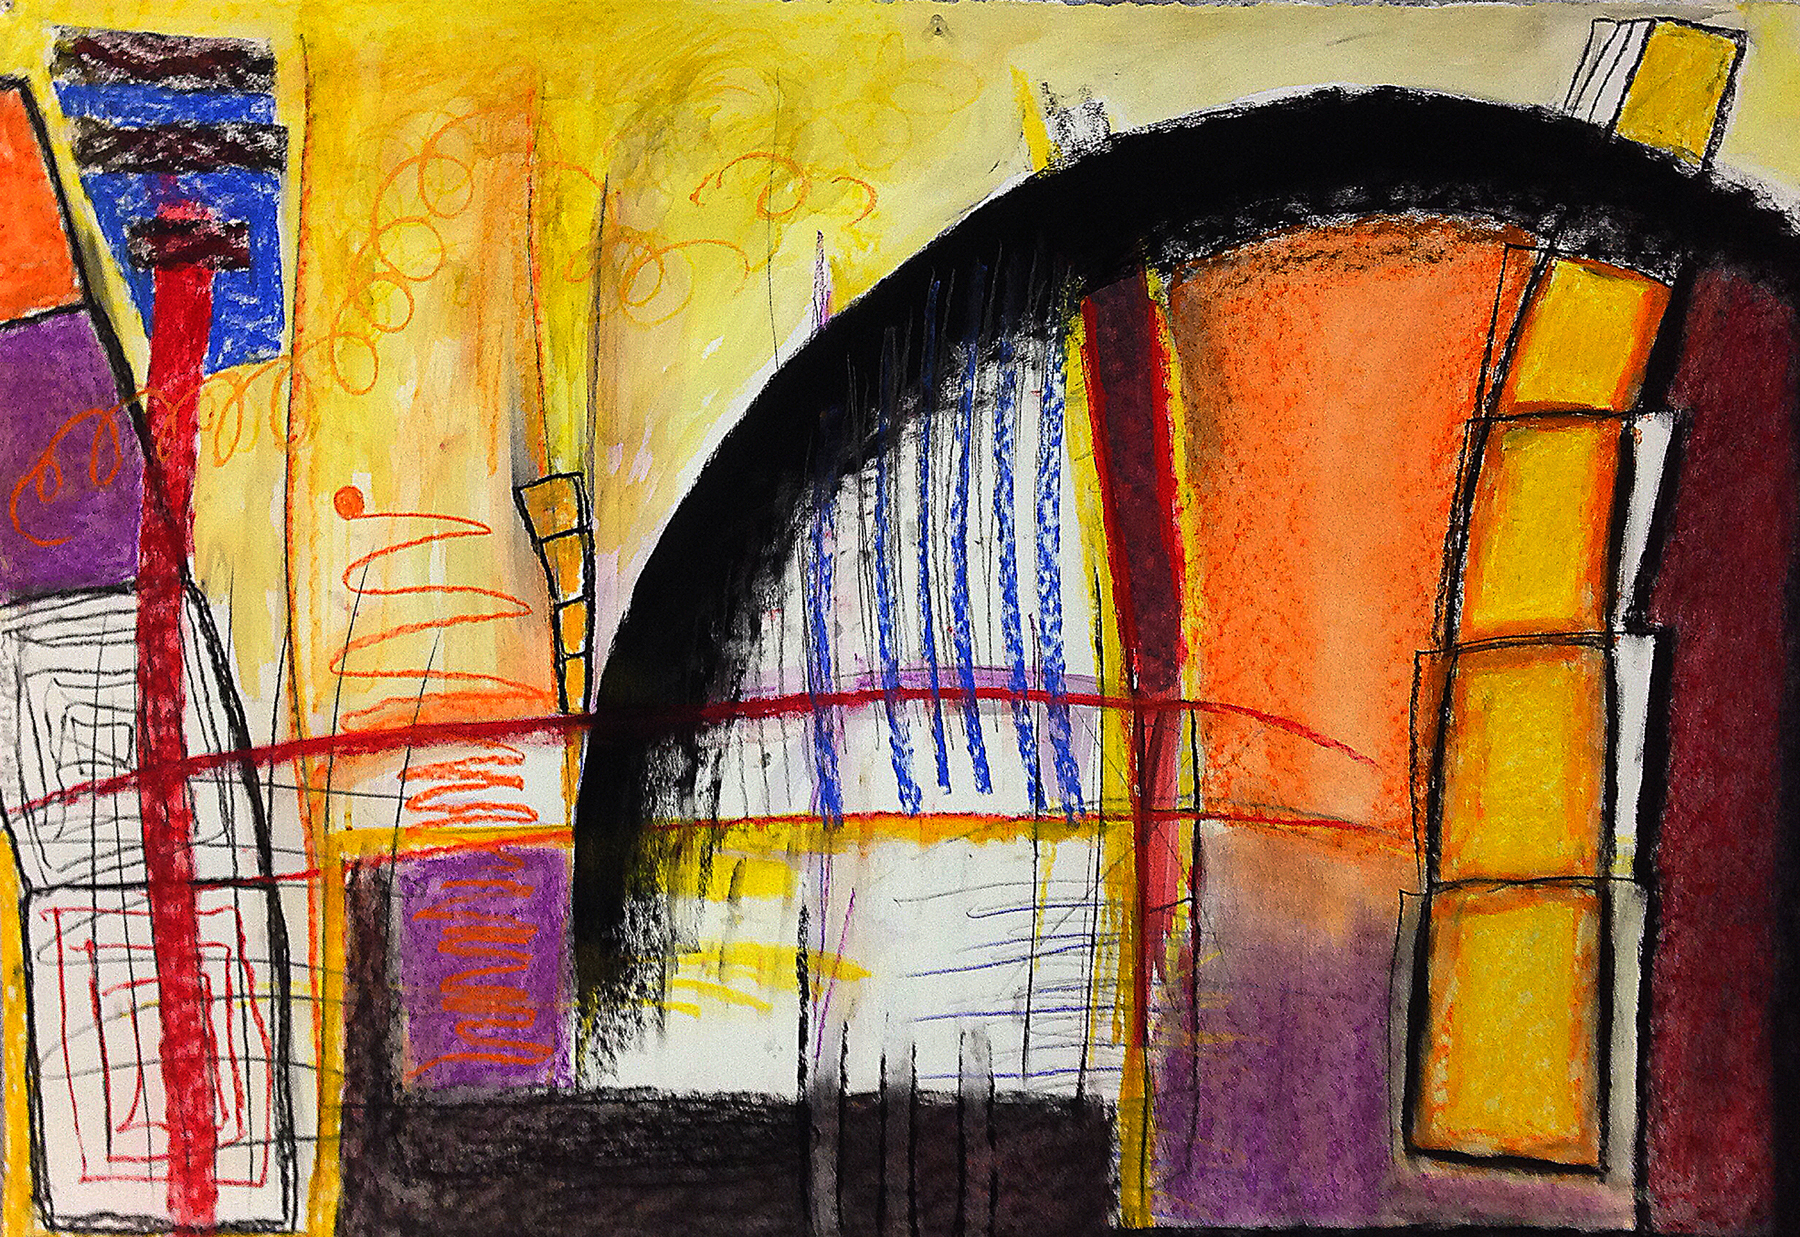 Scout K. Austin  and Kellie Weeks,  Untitled No. 19   pastel and charcoal, 30 x44in., $600.00